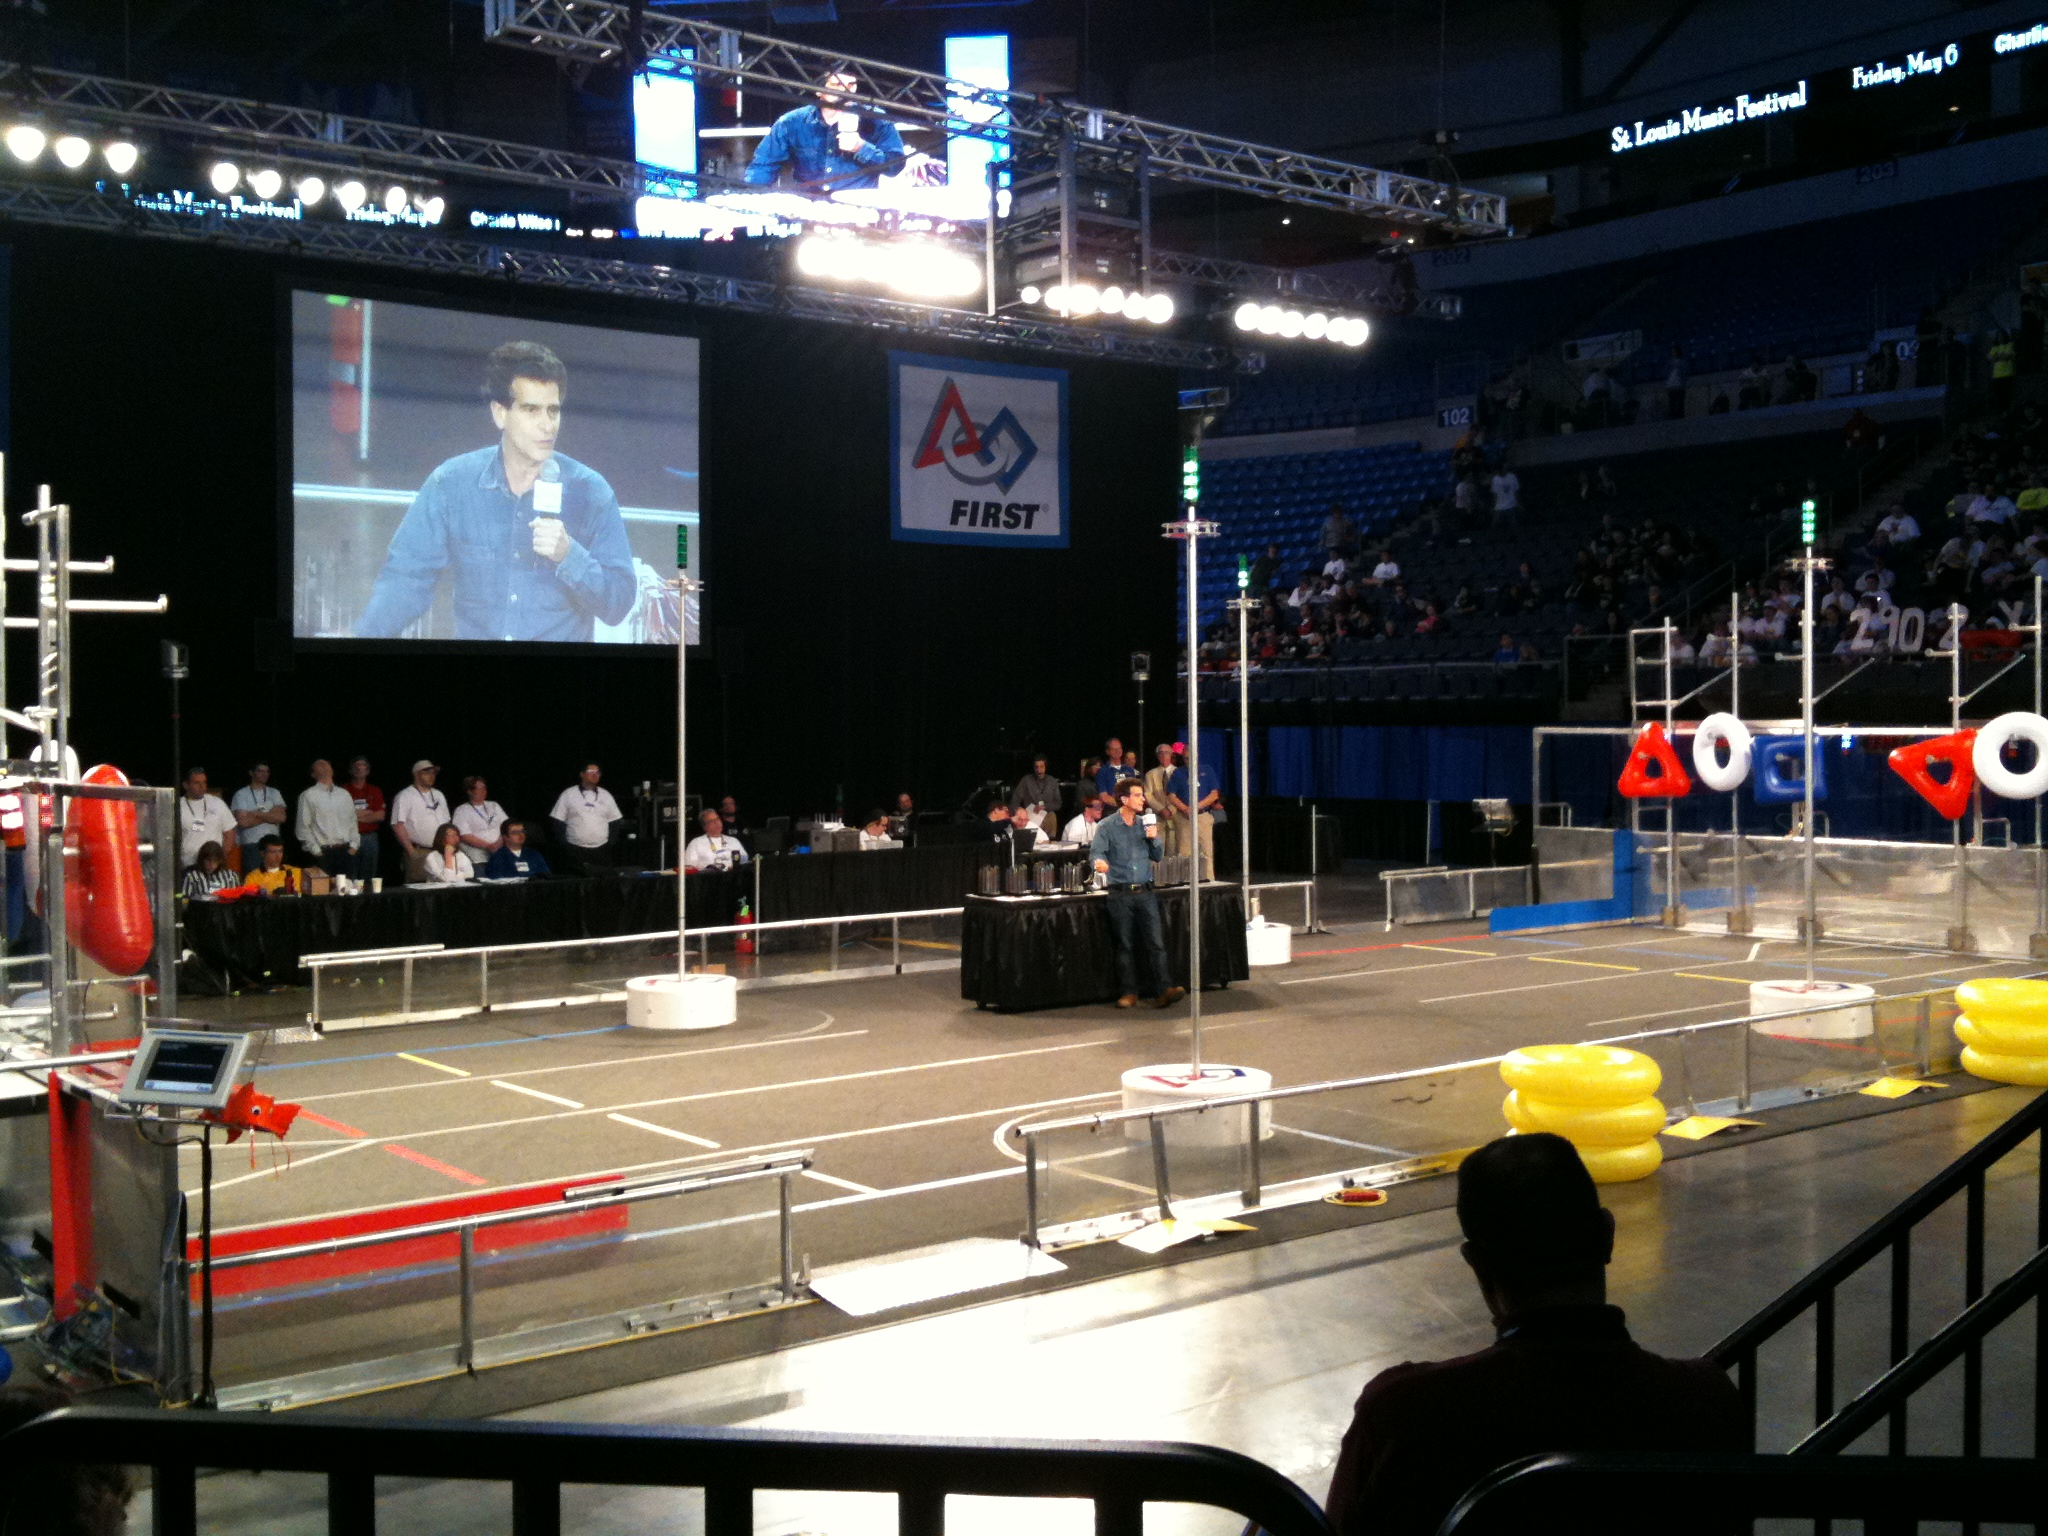 FIRST founder, Dean Kamen, speaking at the 2011 St. Louis Regional